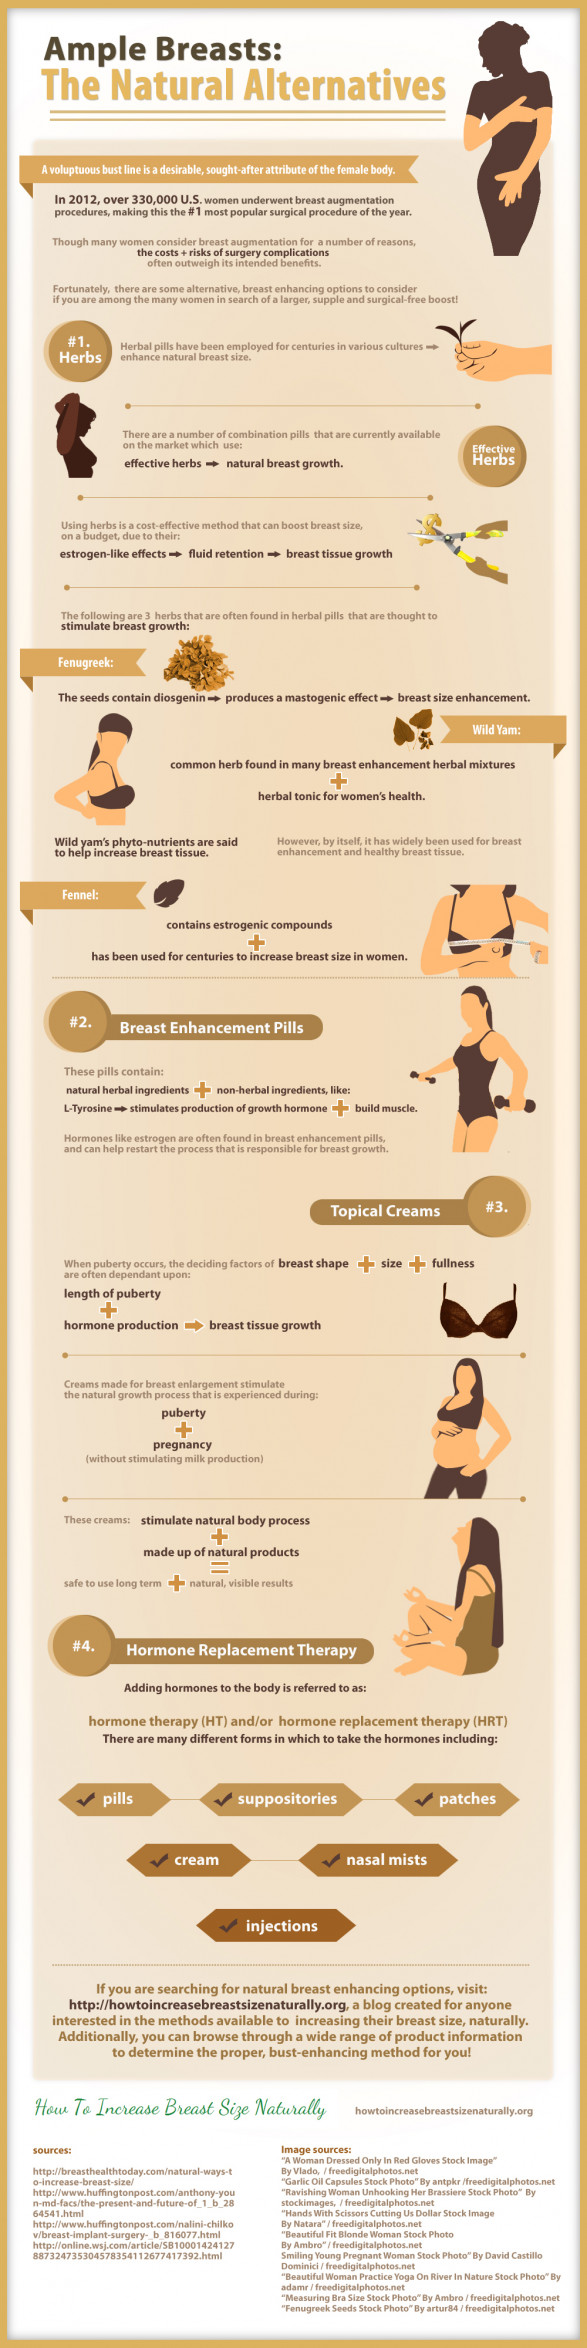 Ample Breasts:The Natural Alternatives